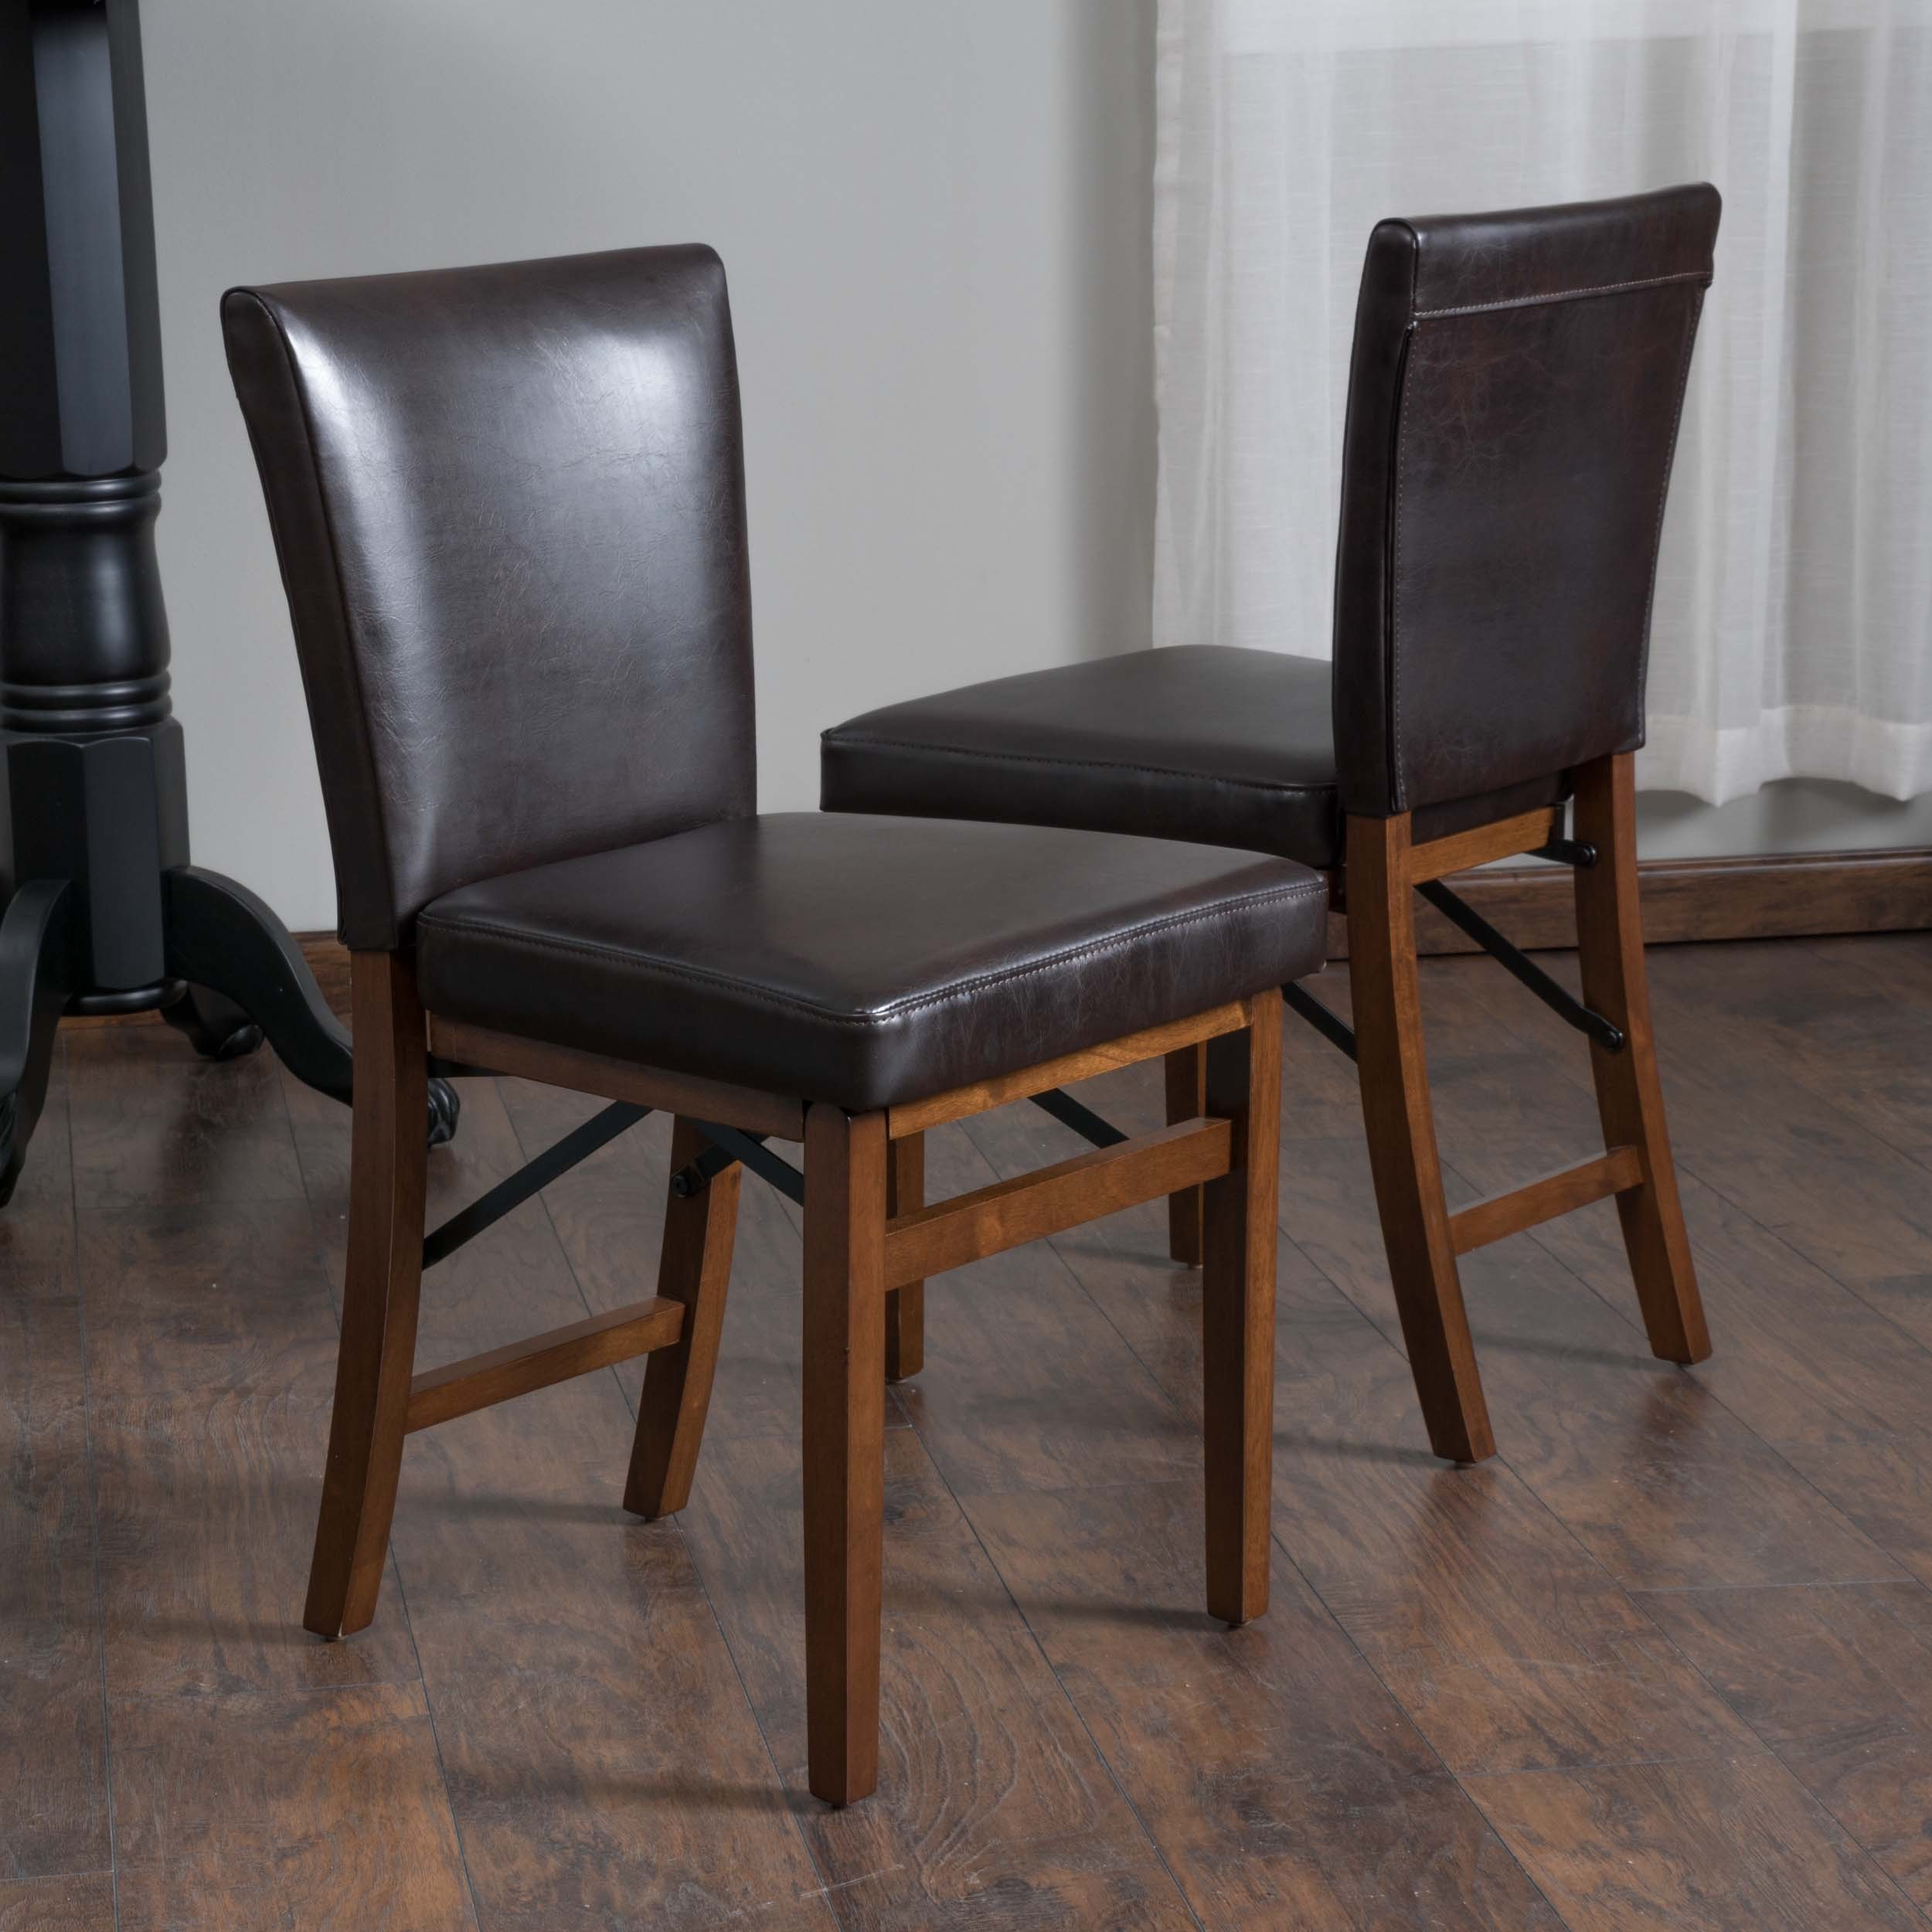 Folding Dining Chairs Padded.Lane Bonded Leather Folding Dining Chair Set Of 2 By Christopher Knight Home